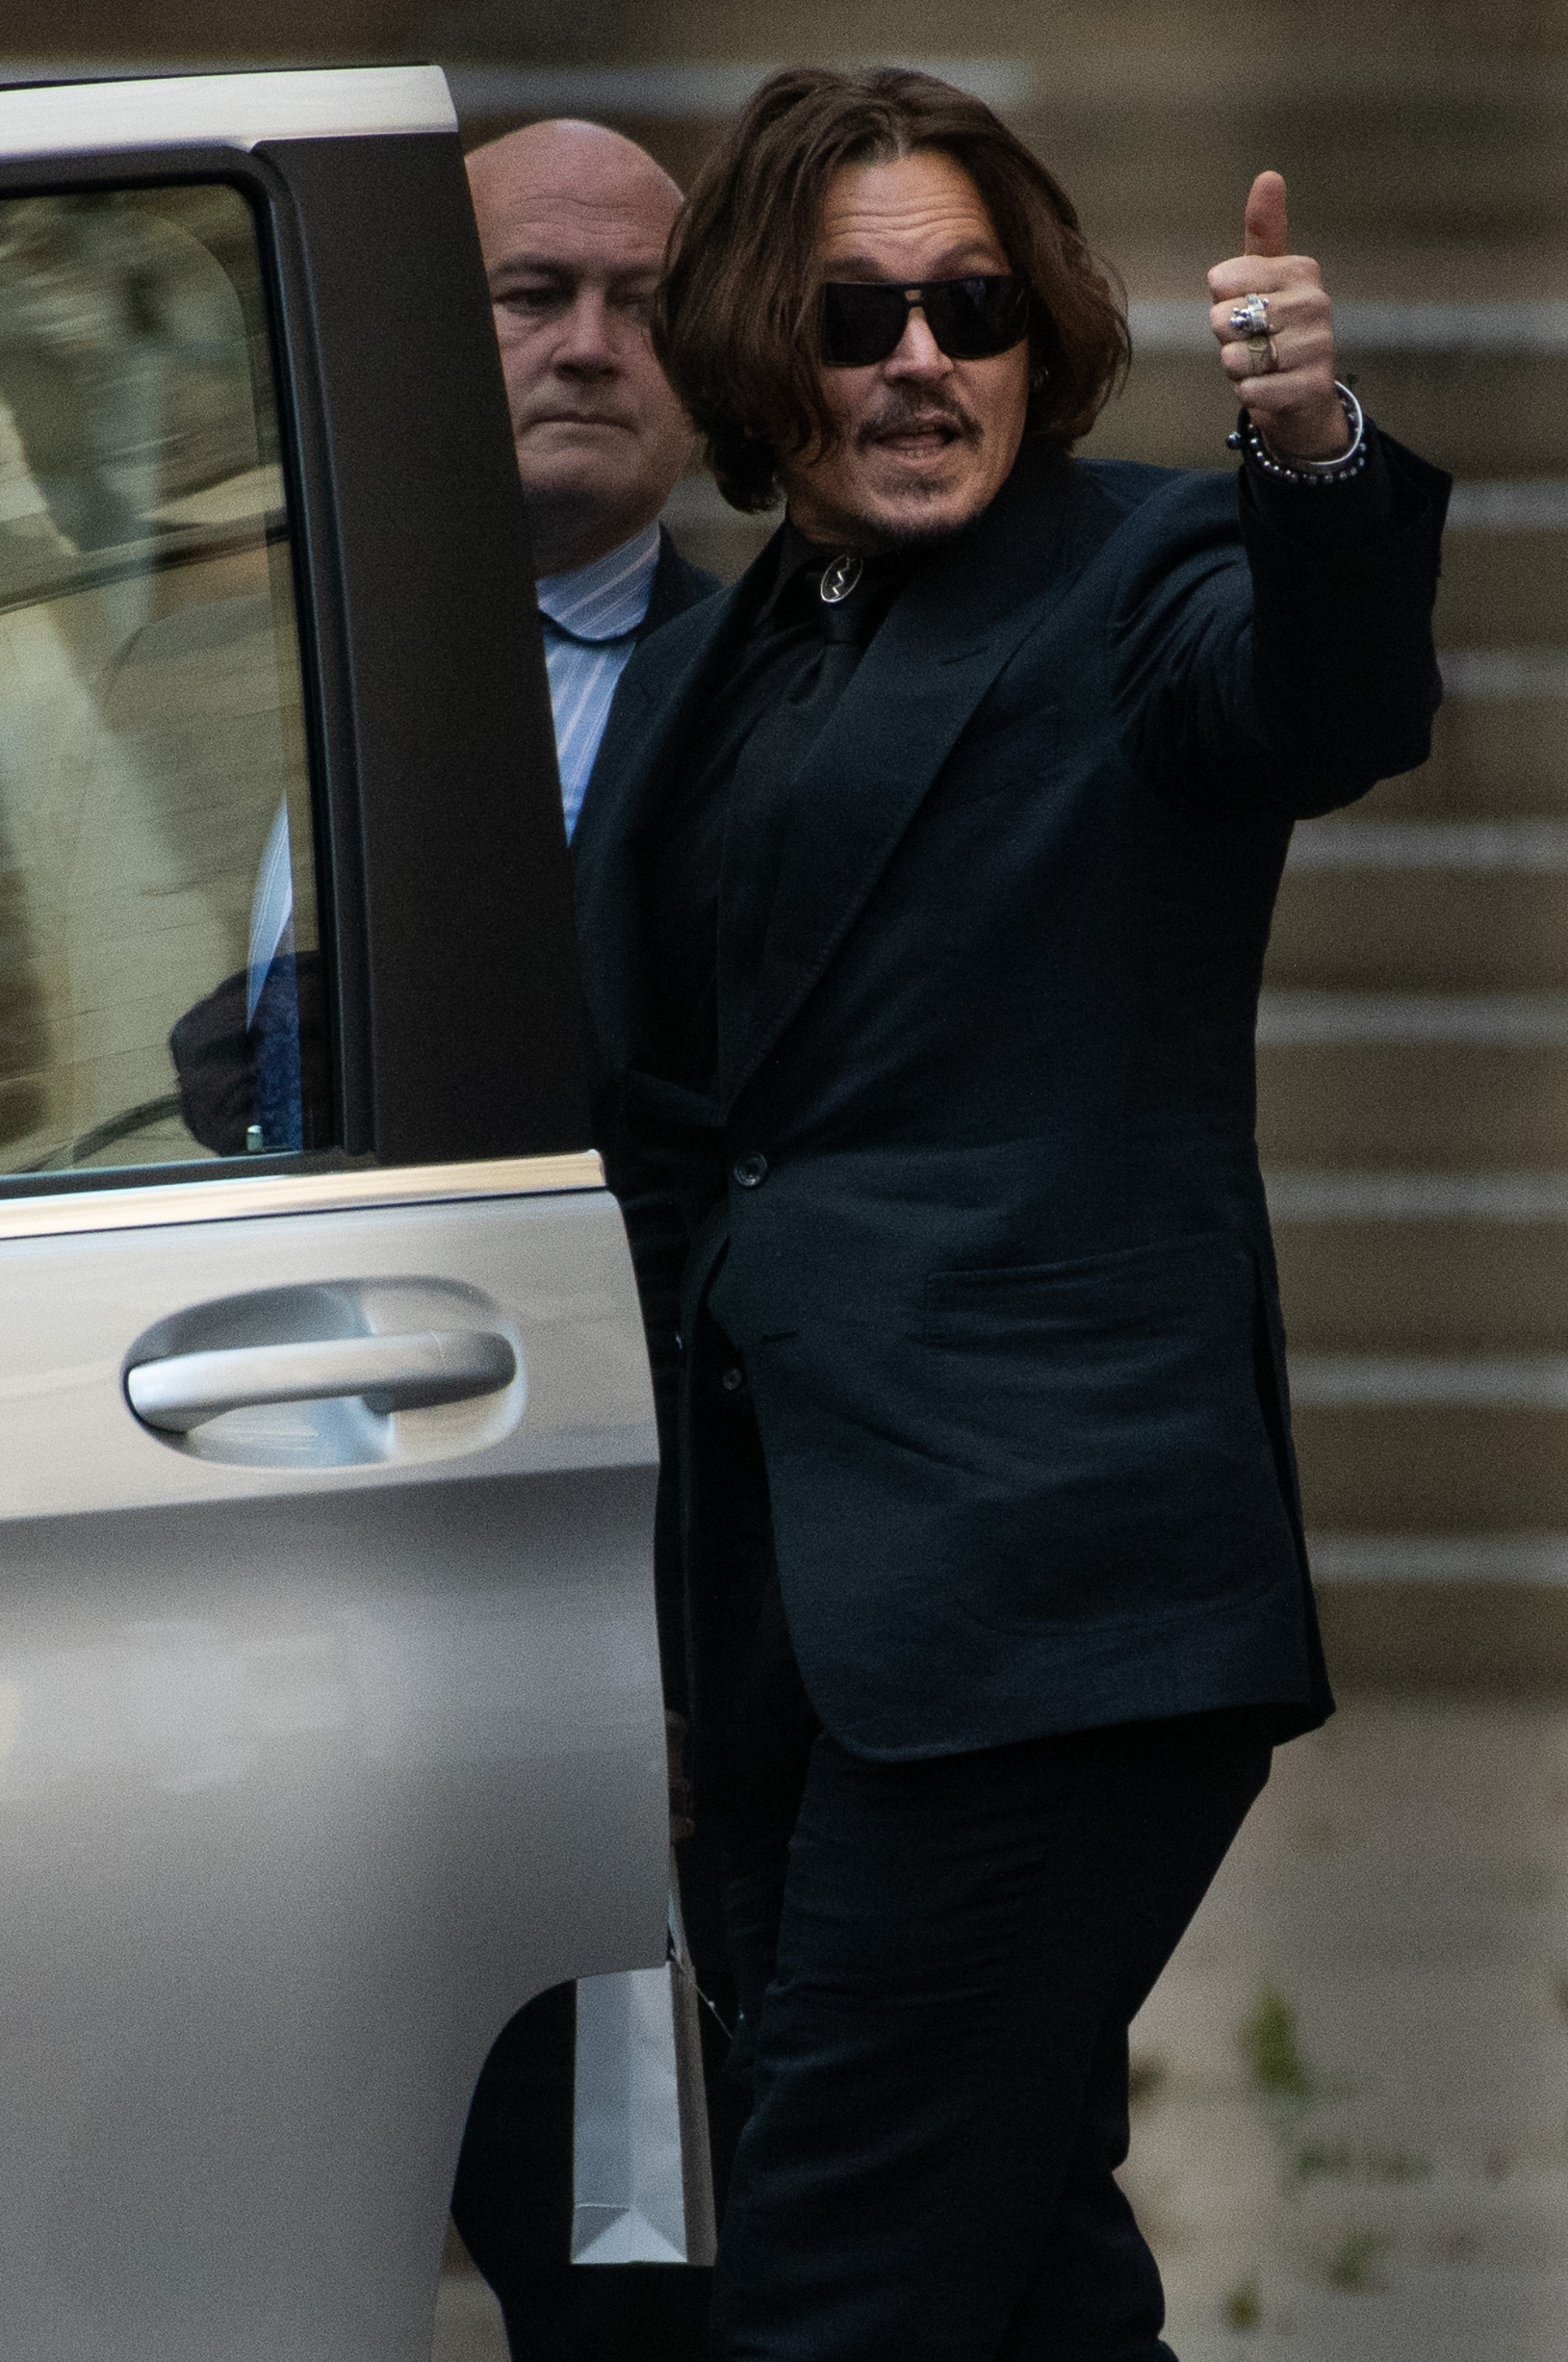 American Actor Johnny Depp departs the tenth day of a court hearing on a libel case against The Sun newspaper - Royal Courts Of Justice, London, England, UK on Monday 20 July, 2020.,Image: 545324870, License: Rights-managed, Restrictions: WORLD RIGHTS - Fee Payable Upon Reproduction - For queries contact Avalon.red - sales@avalon.red London: +44 (0) 20 7421 6000 Los Angeles: +1 (310) 822 0419 Berlin: +49 (0) 30 76 212 251, Model Release: no, Credit line: Retna/Avalon.red / Avalon Editorial / Profimedia